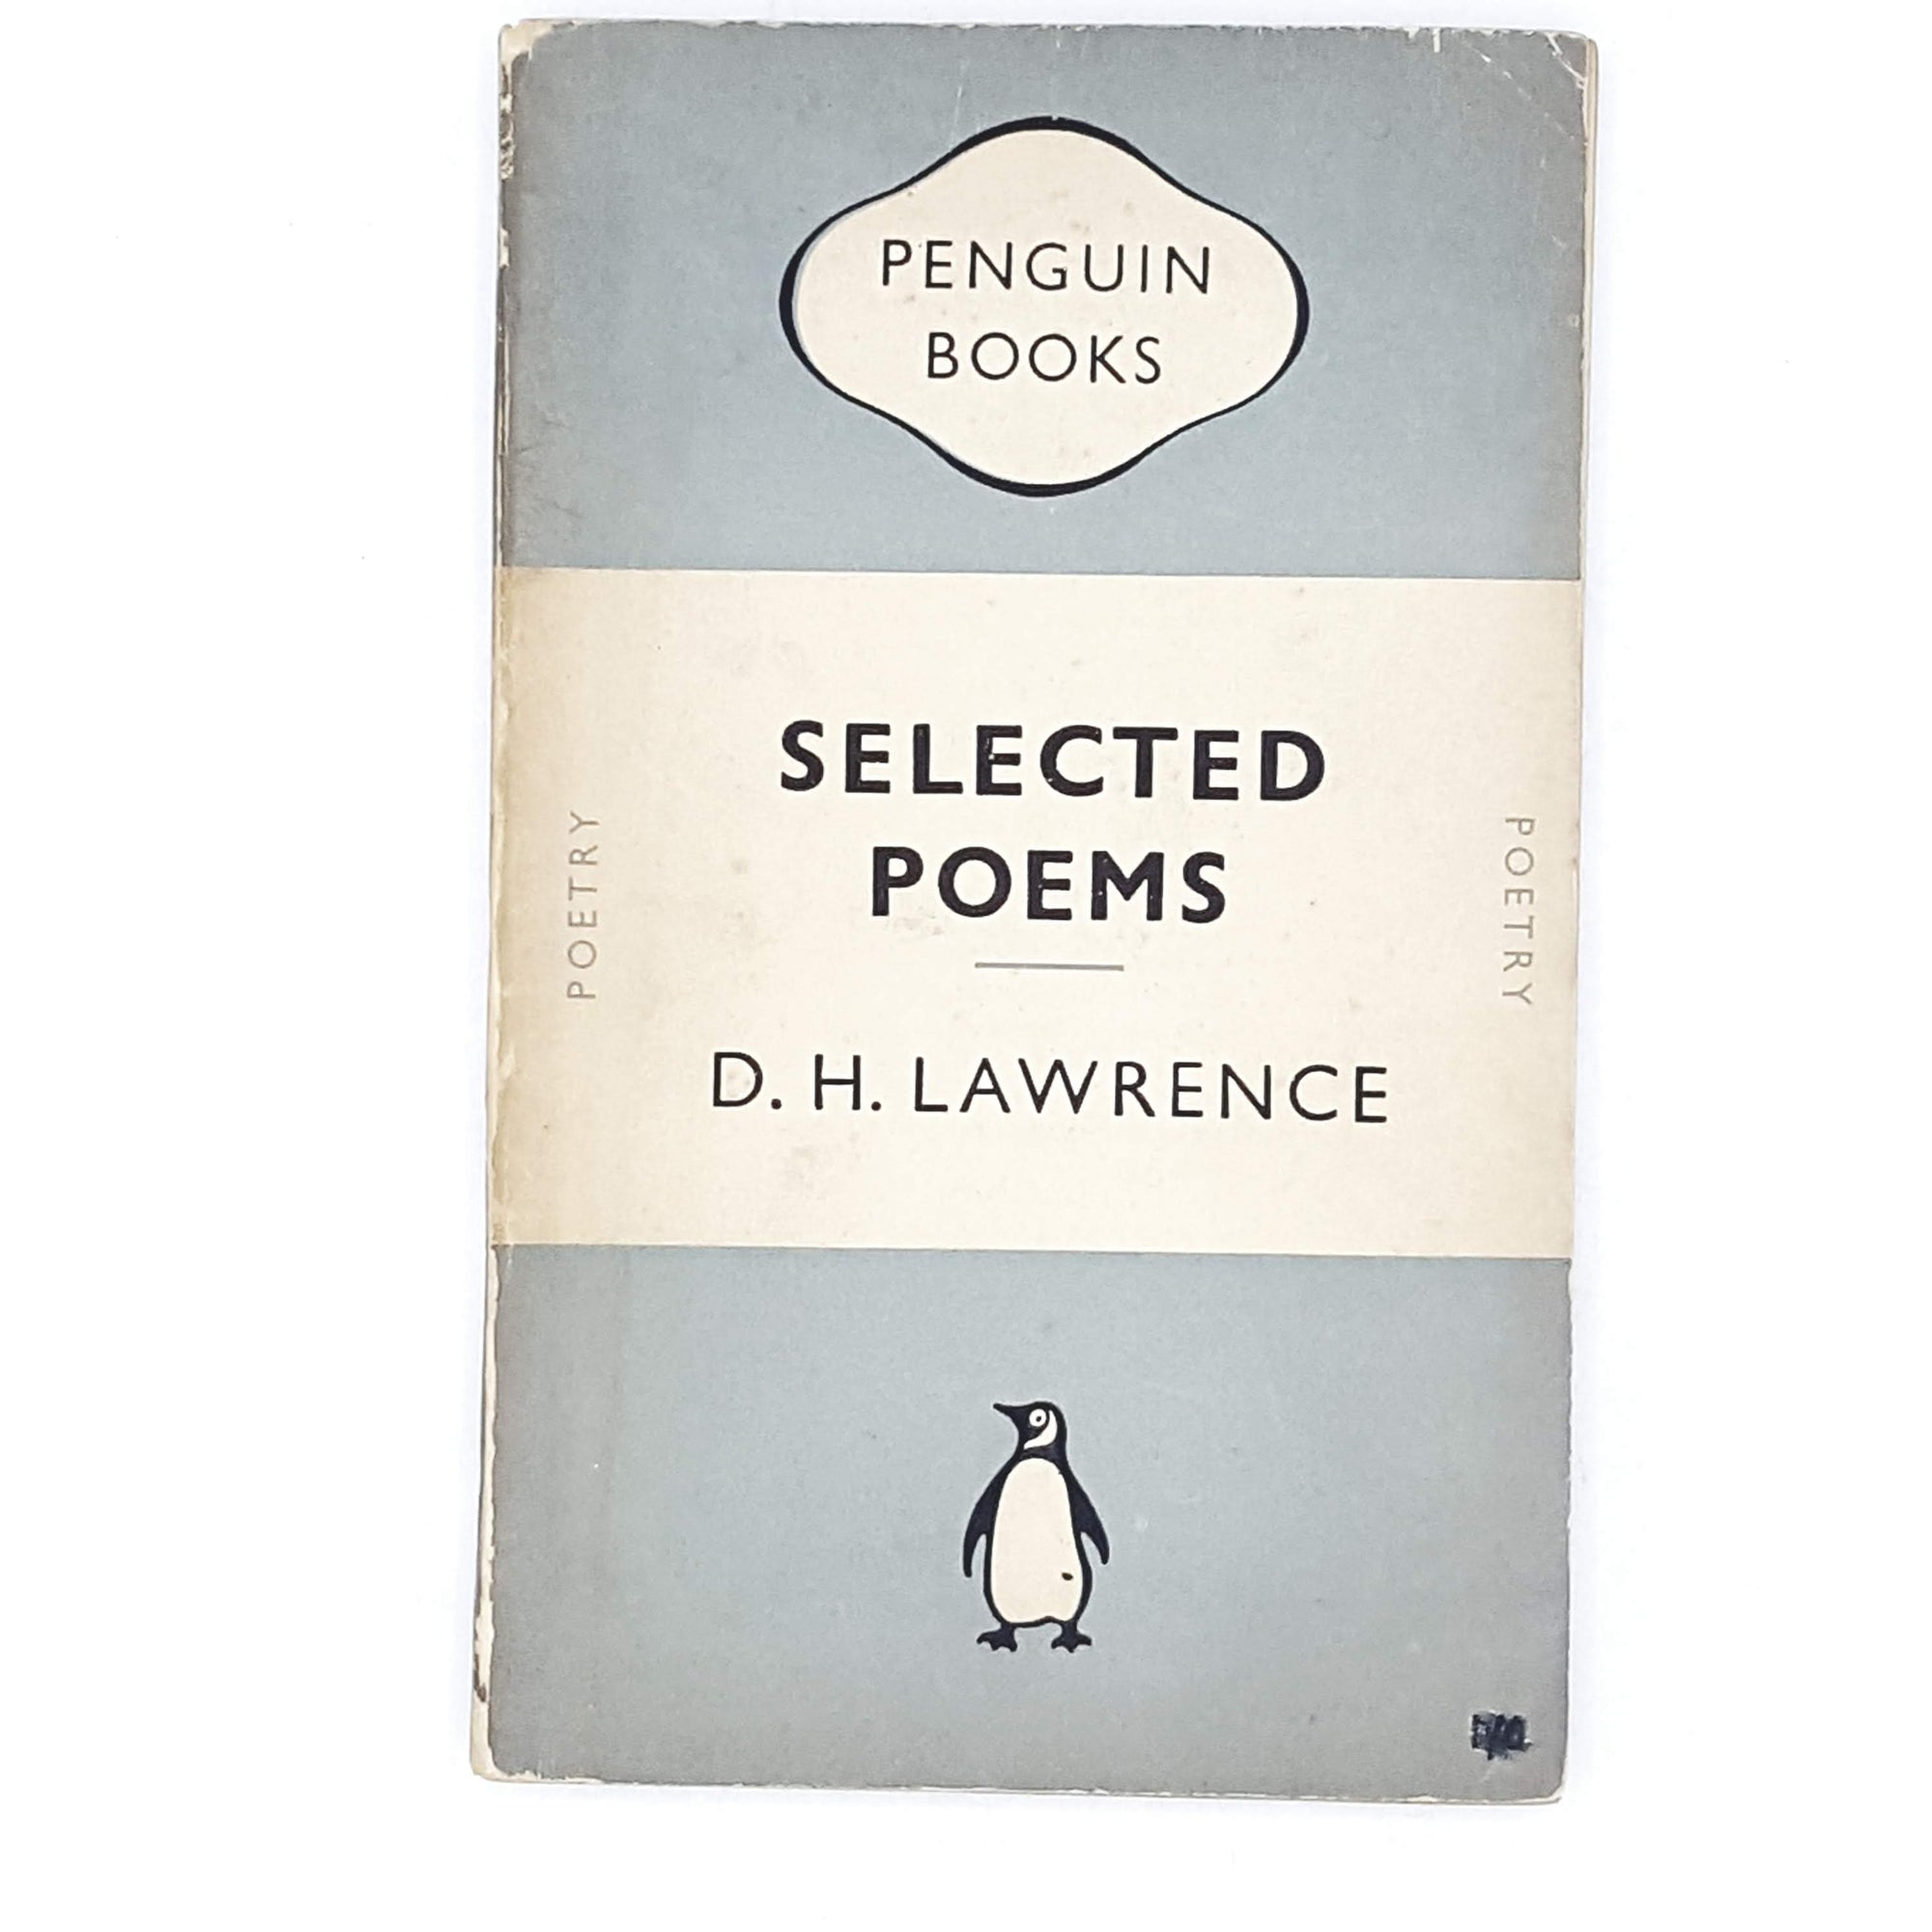 dh-lawrence-penguin-poetry-vintage-book-country-house-library